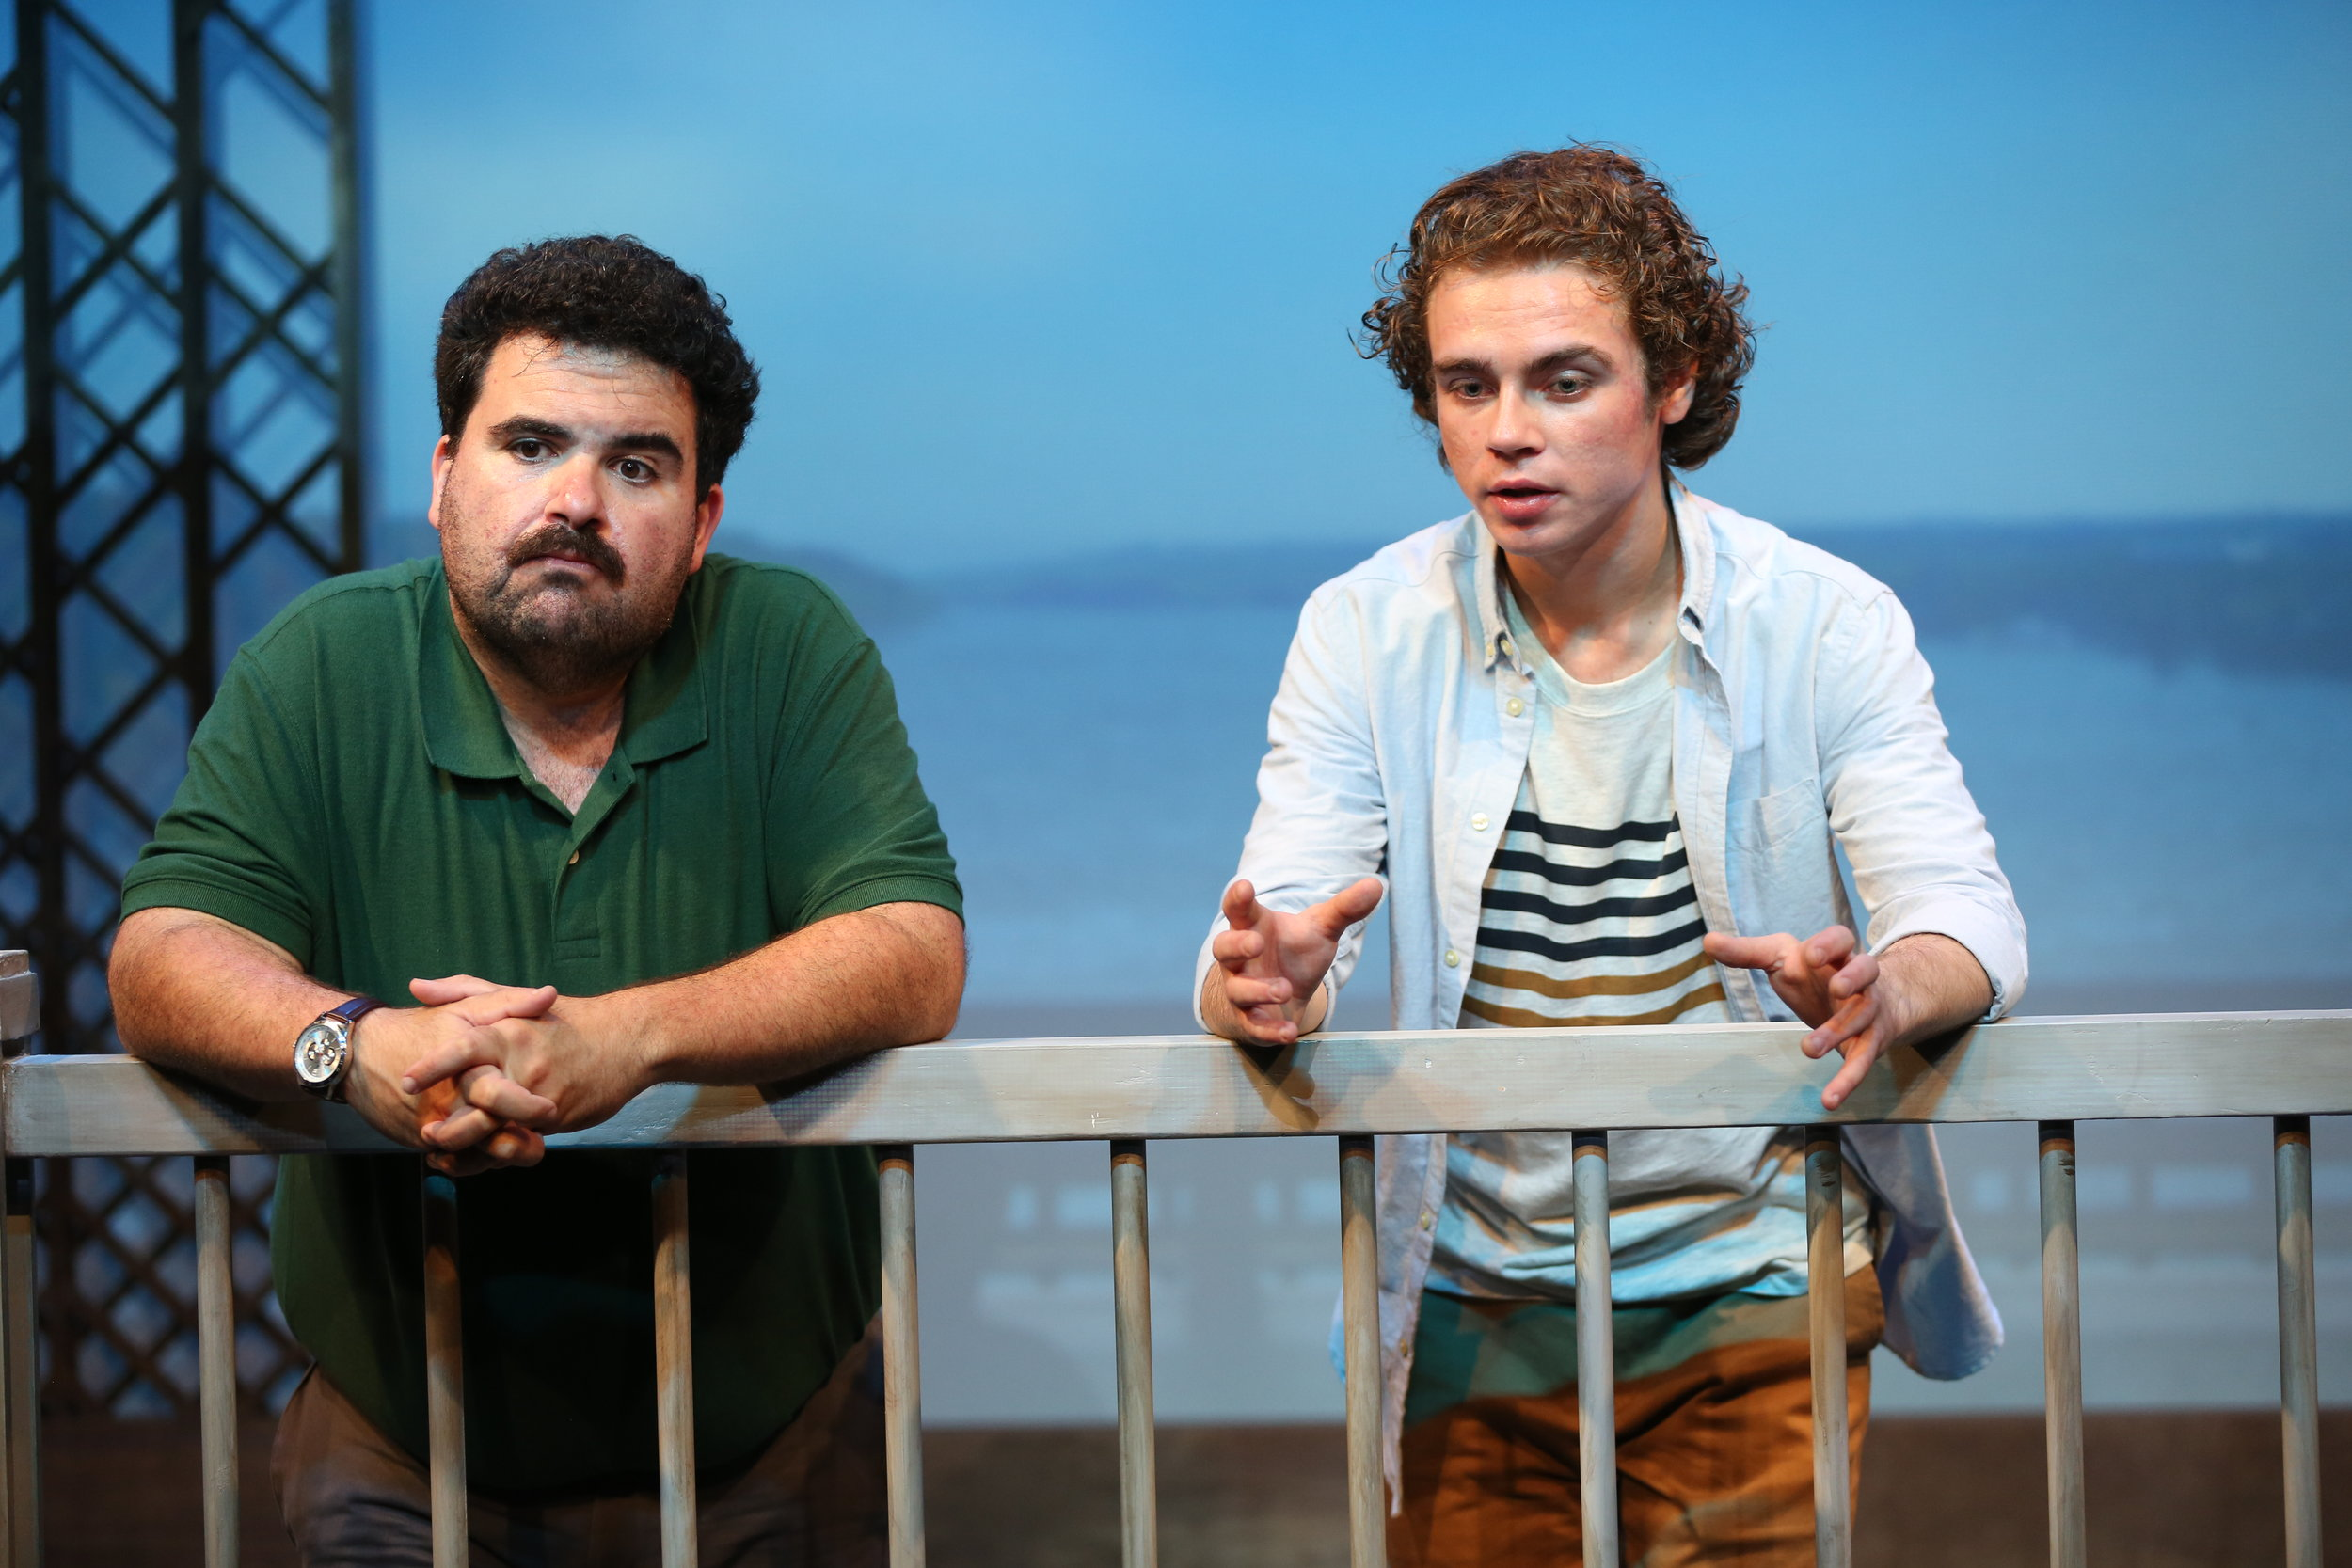 INTERVIEW: This summer, keep it brief with 'Summer Shorts' at 59E59 - Check out my interview with John Soltes from Hollywood Soapbox! Photo by Carol Rosegg.